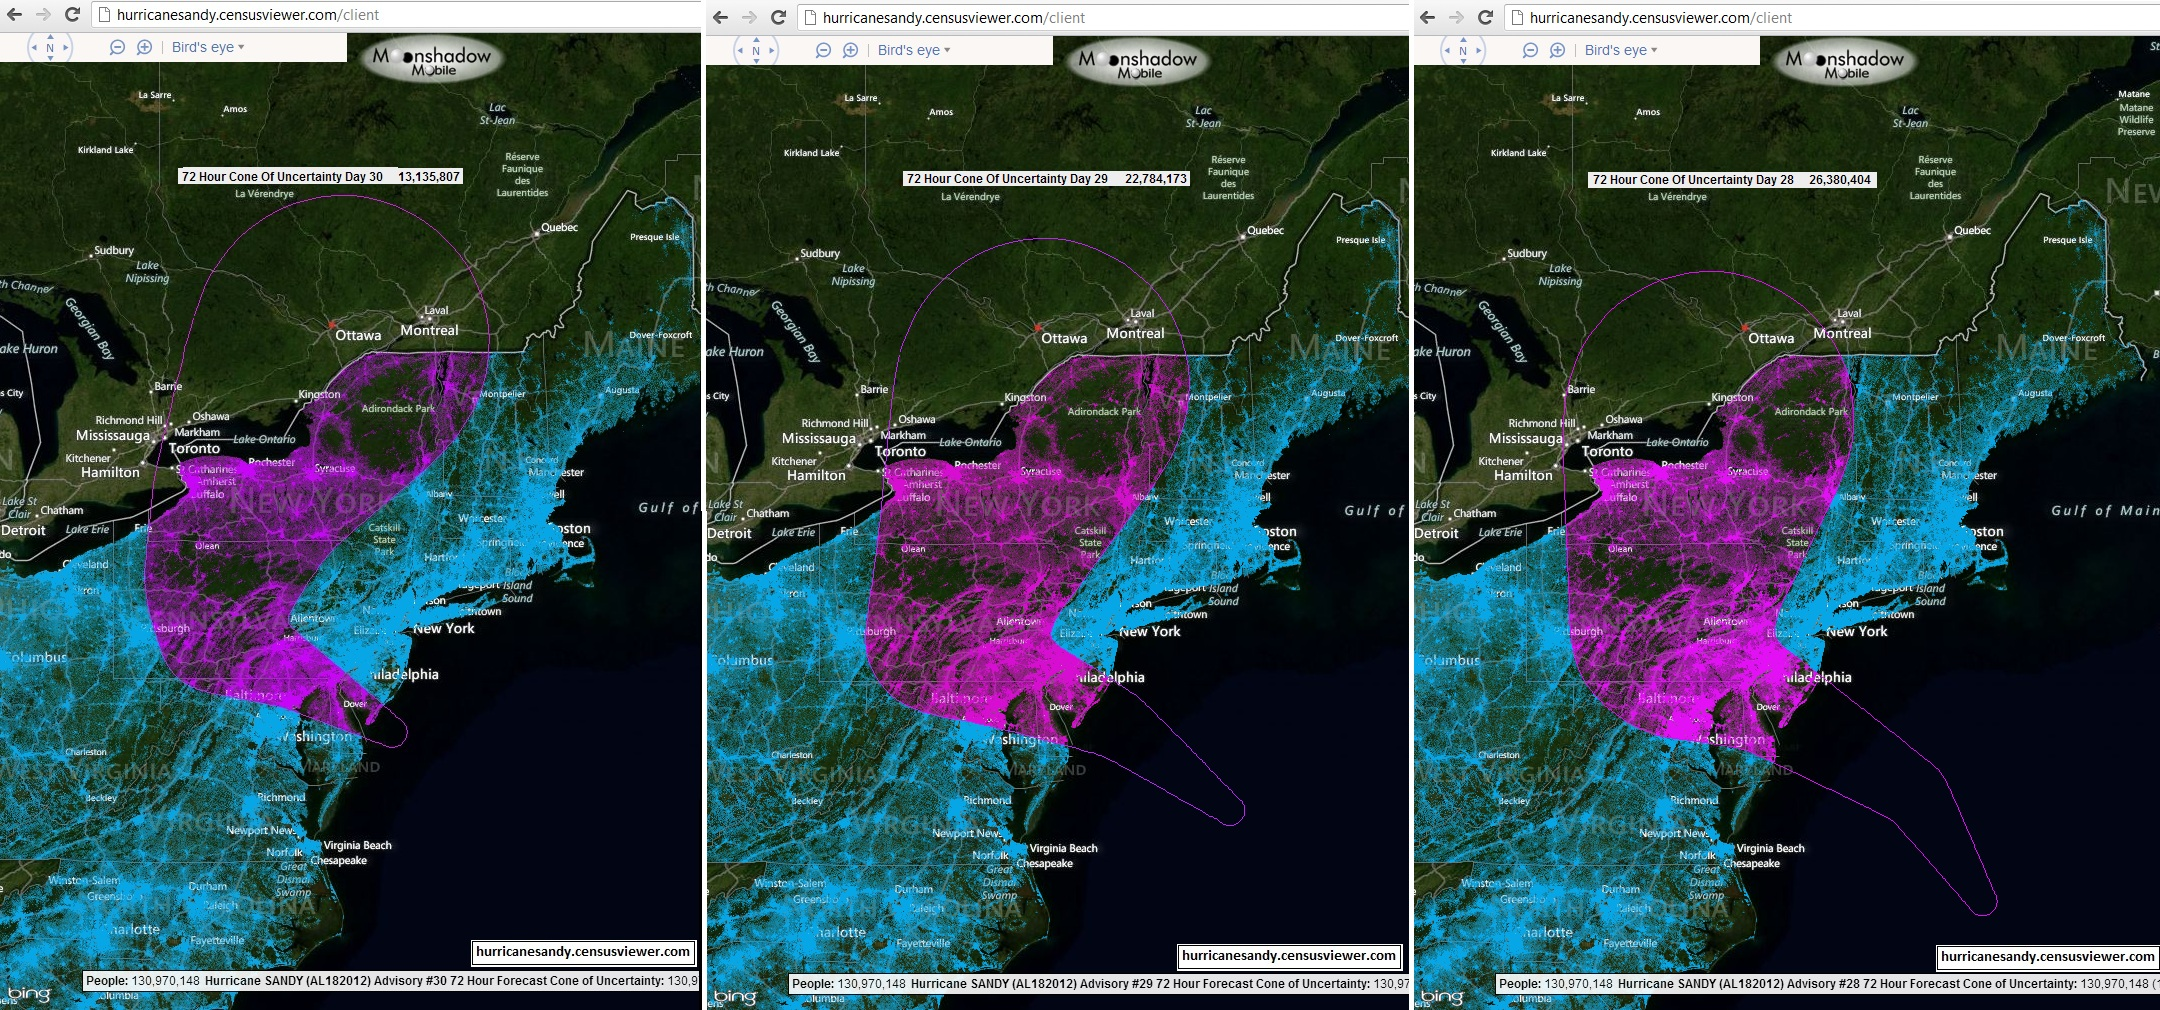 Hurricane_Sandy_Day_28_through_Day_30_72_Hour_population_in_path_over_Bing_Satellite